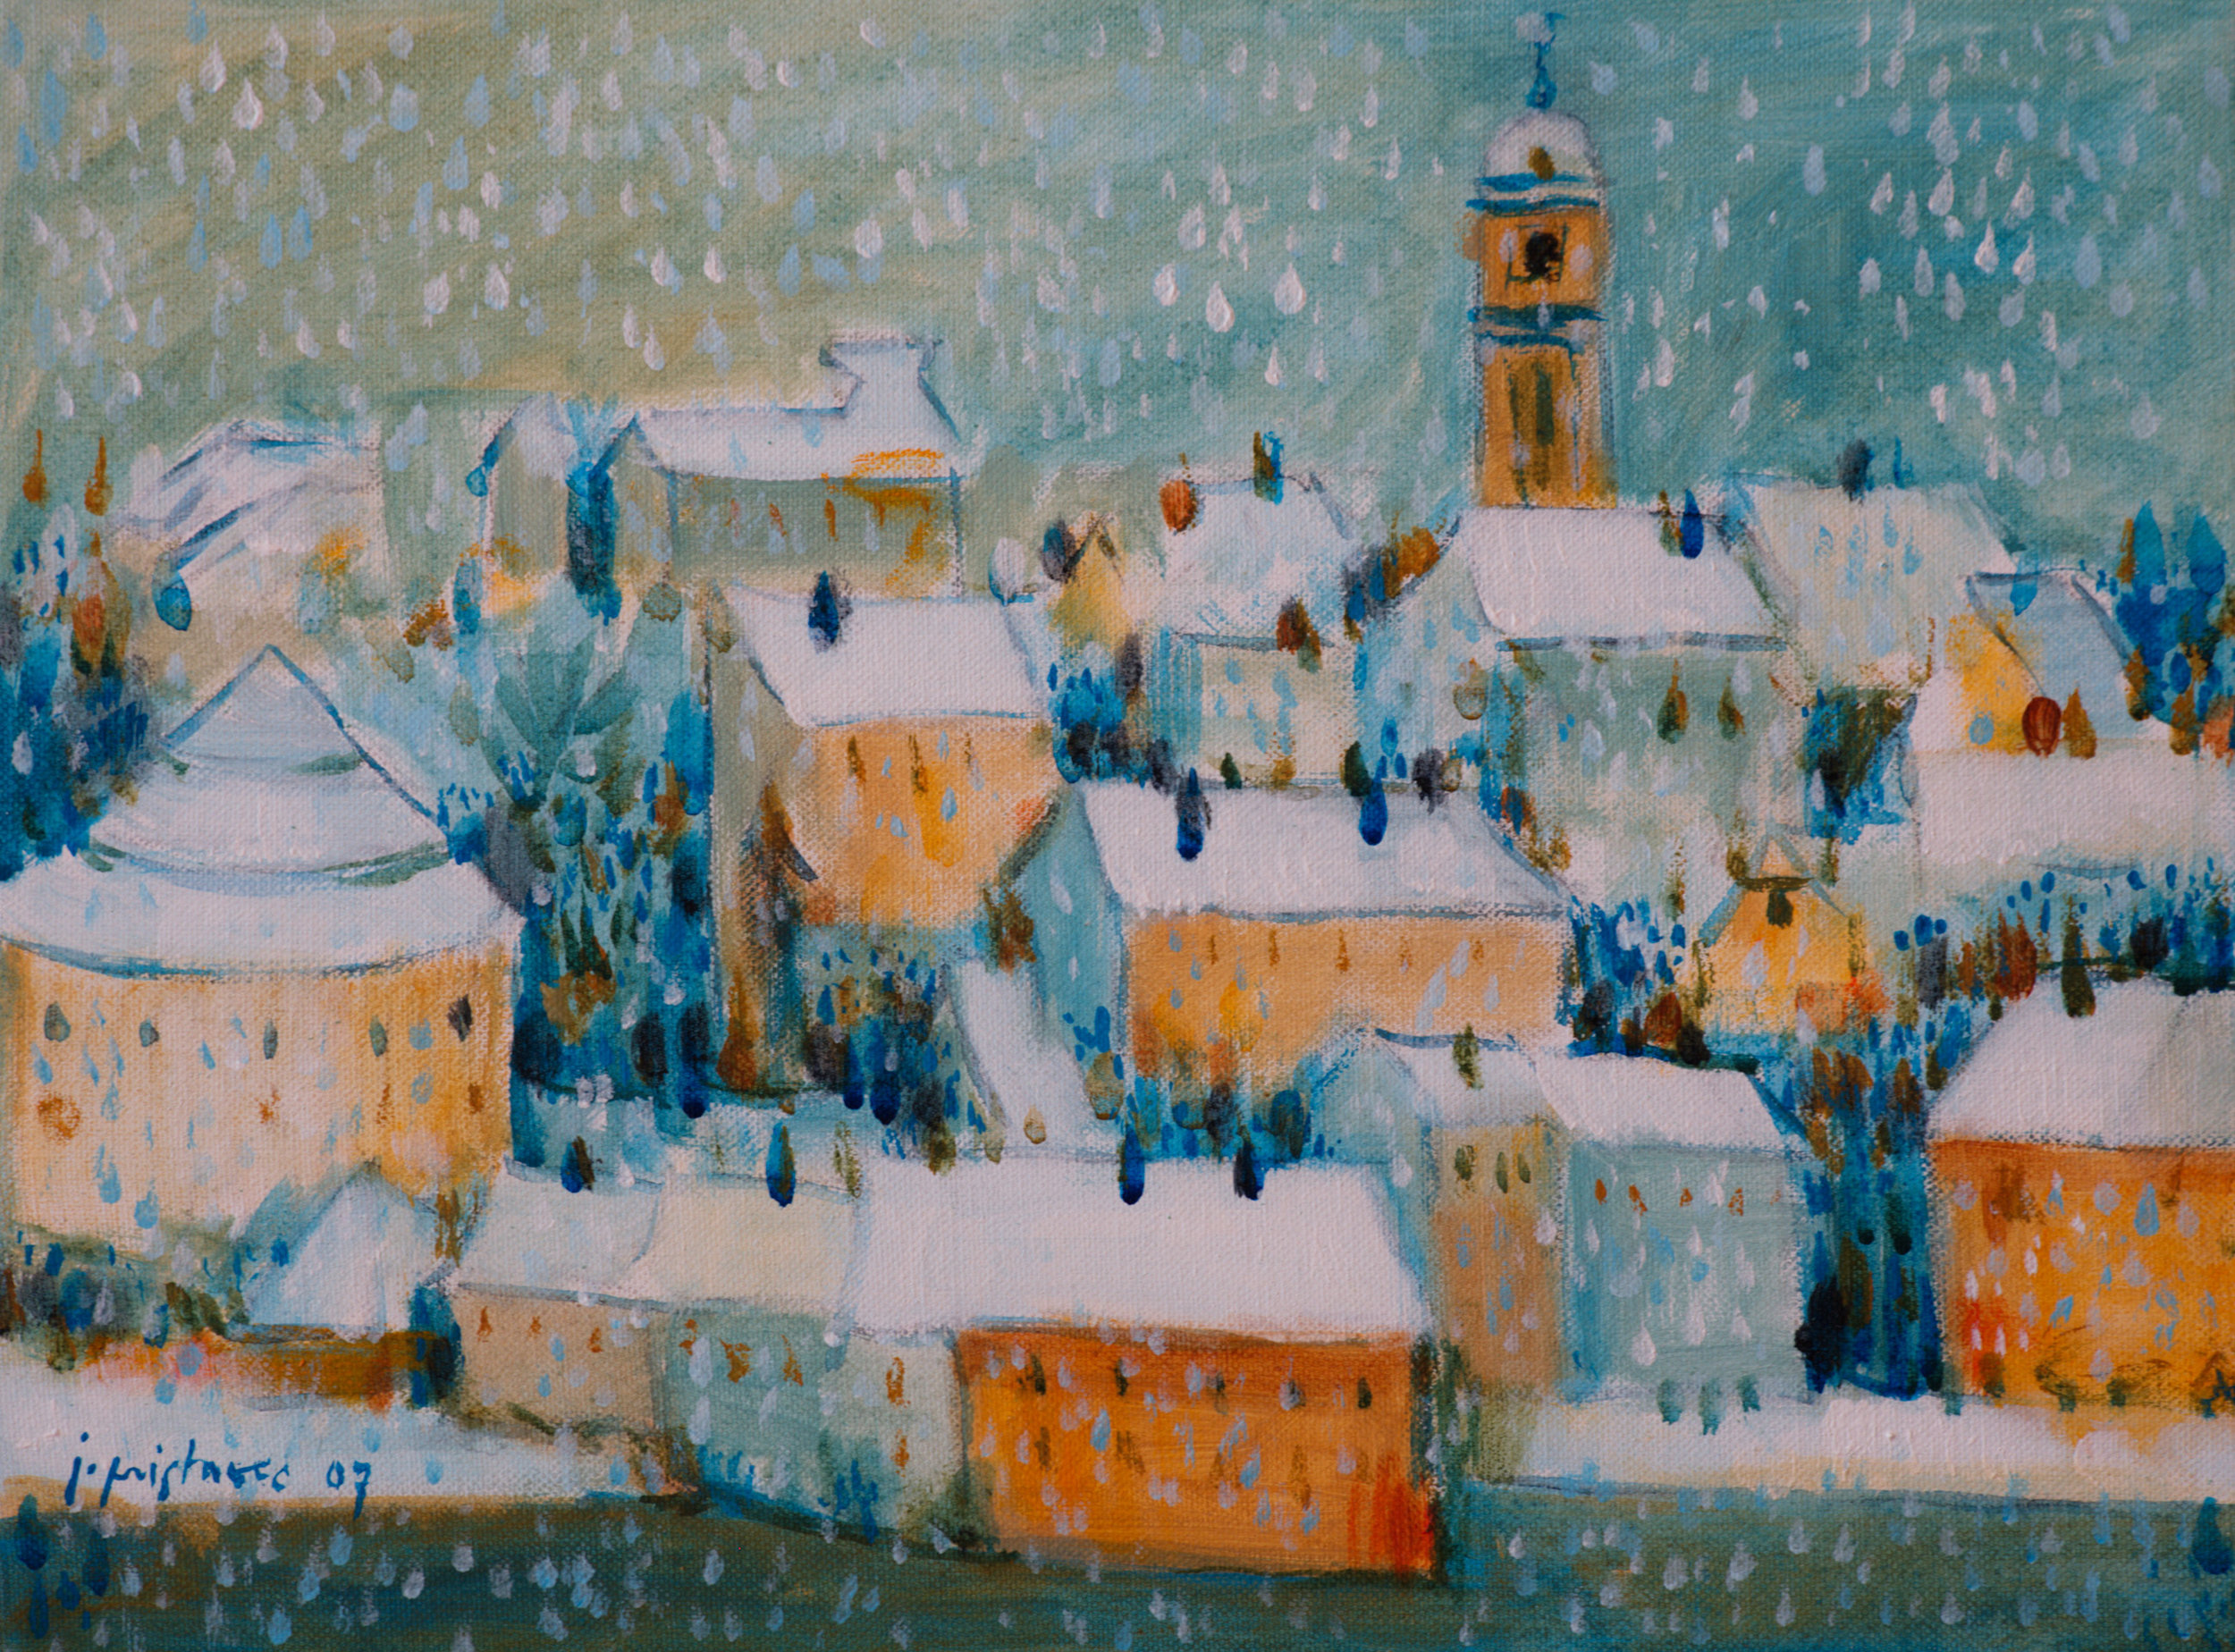 White Maribor  / 2007 / oil on canvas / 40 x 30 cm